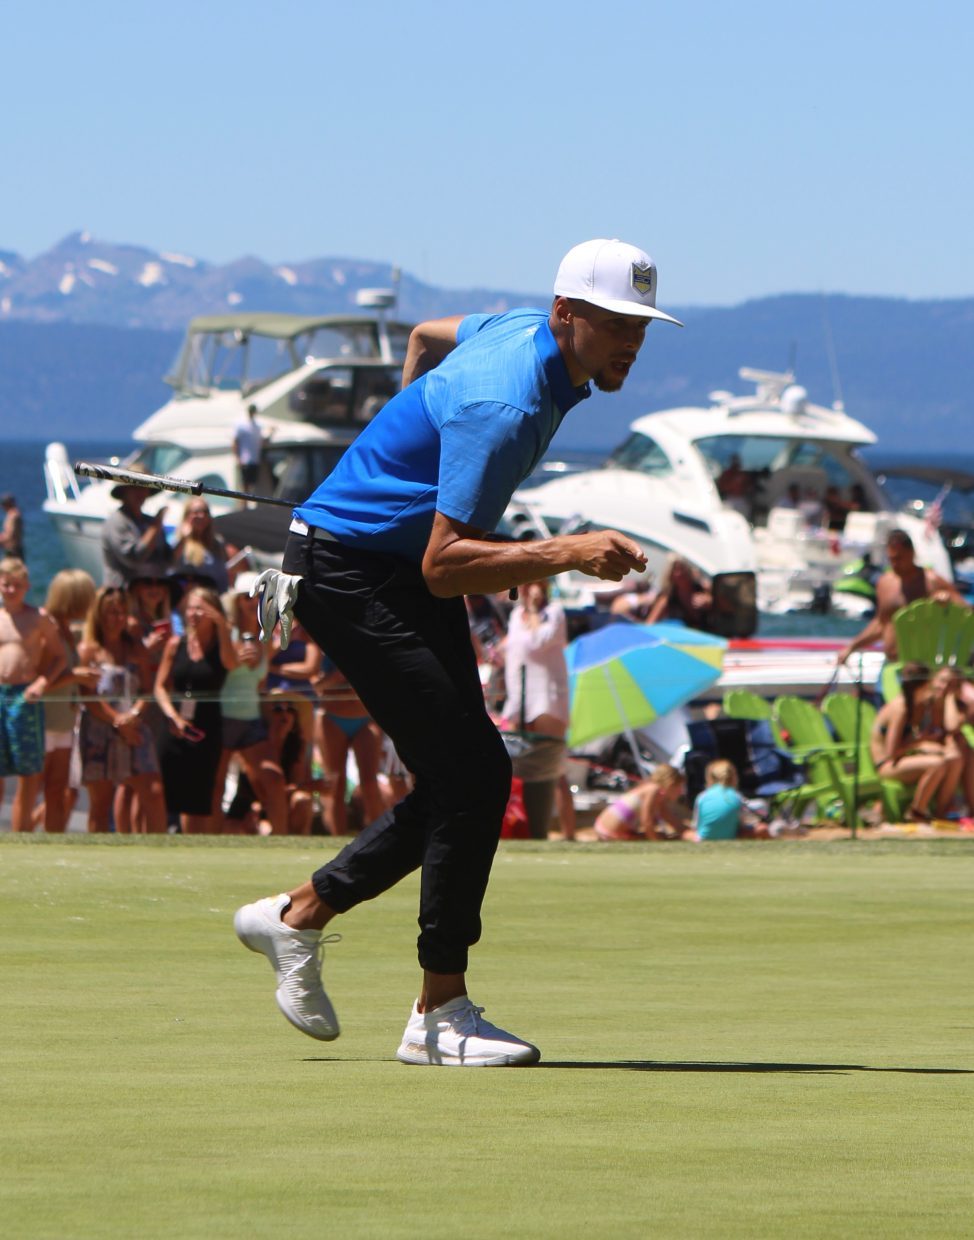 Steph Curry sinks a putt on hole 17 on Sunday during the 2017 celebrity golf tournament.